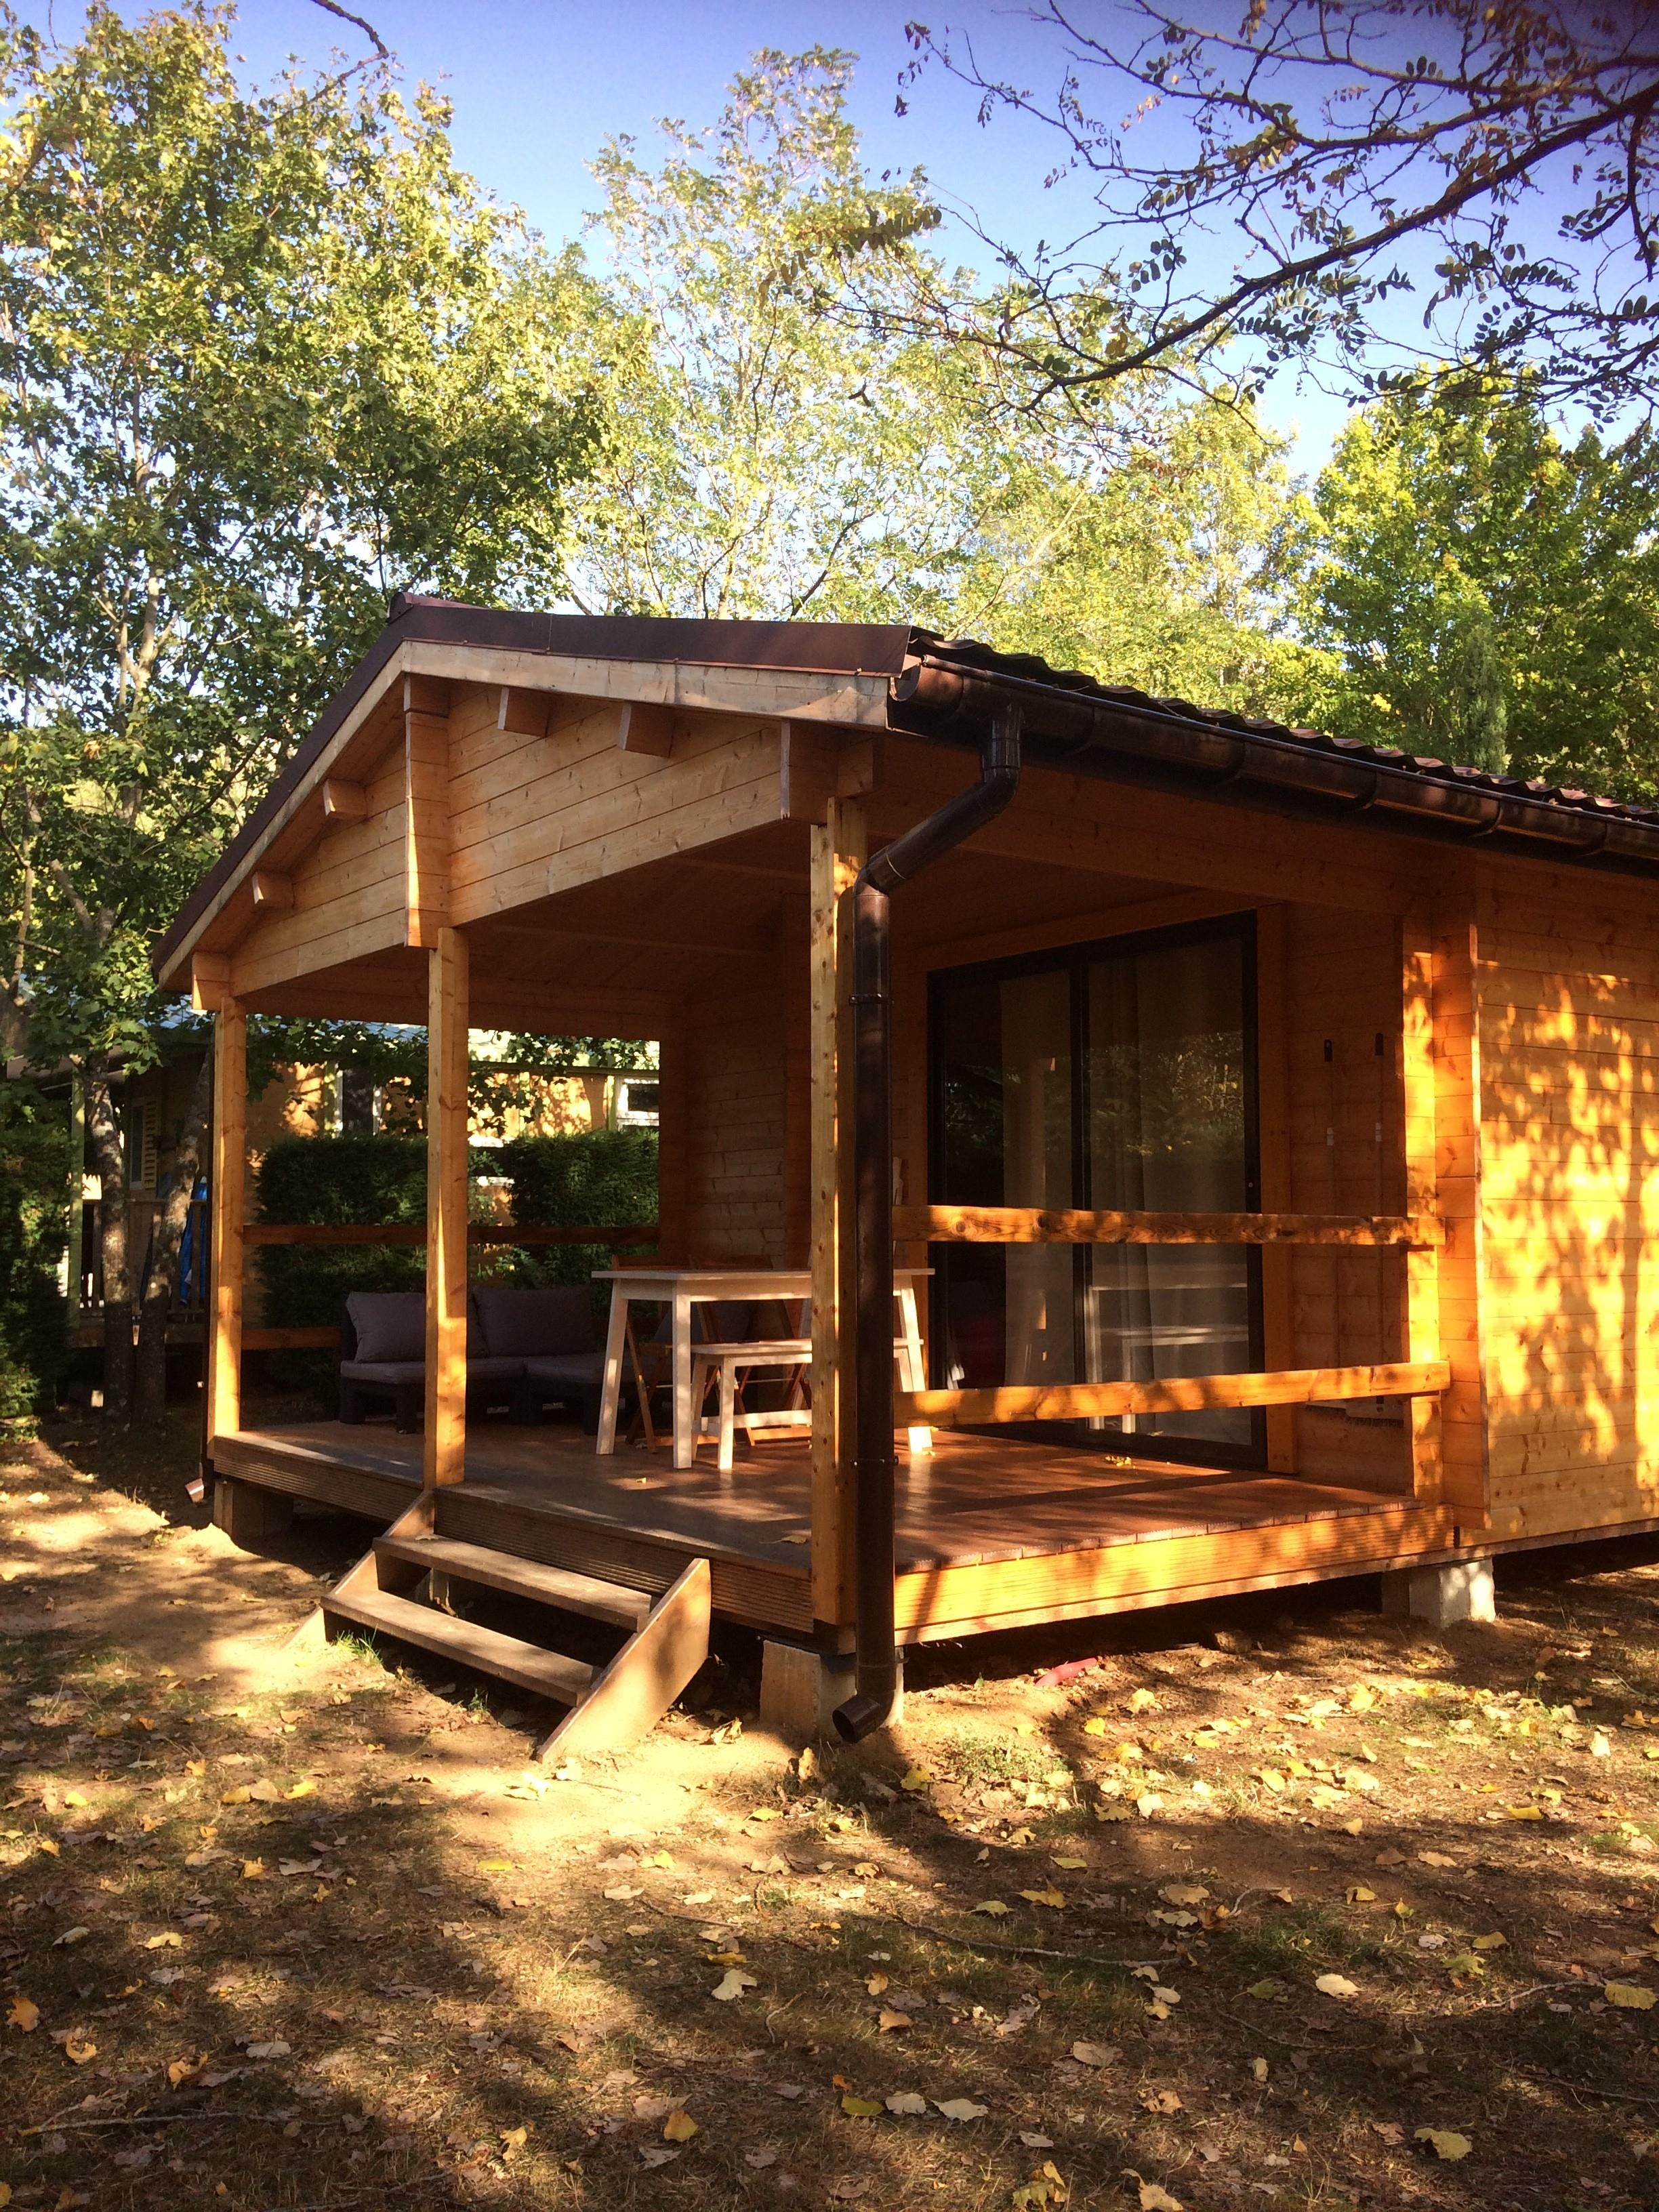 Location - Chalet Green Cottage, 4 Personnes, 2 Chambres. - Camping Sites et Paysages L'Oasis